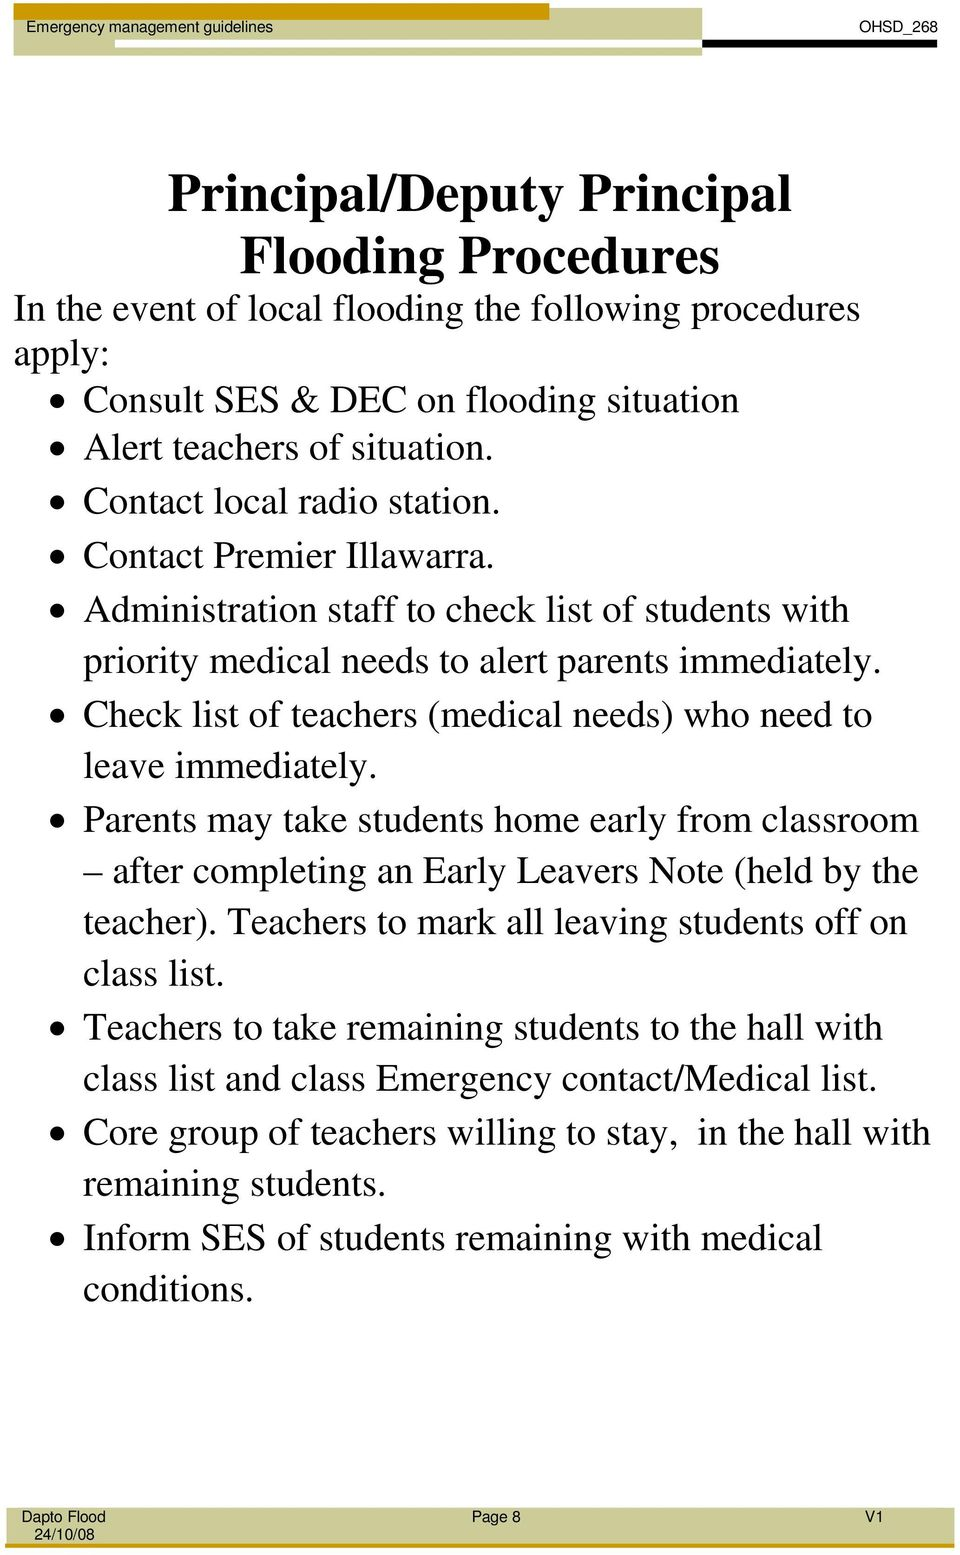 Check list of teachers (medical needs) who need to leave immediately. Parents may take students home early from classroom after completing an Early Leavers Note (held by the teacher).